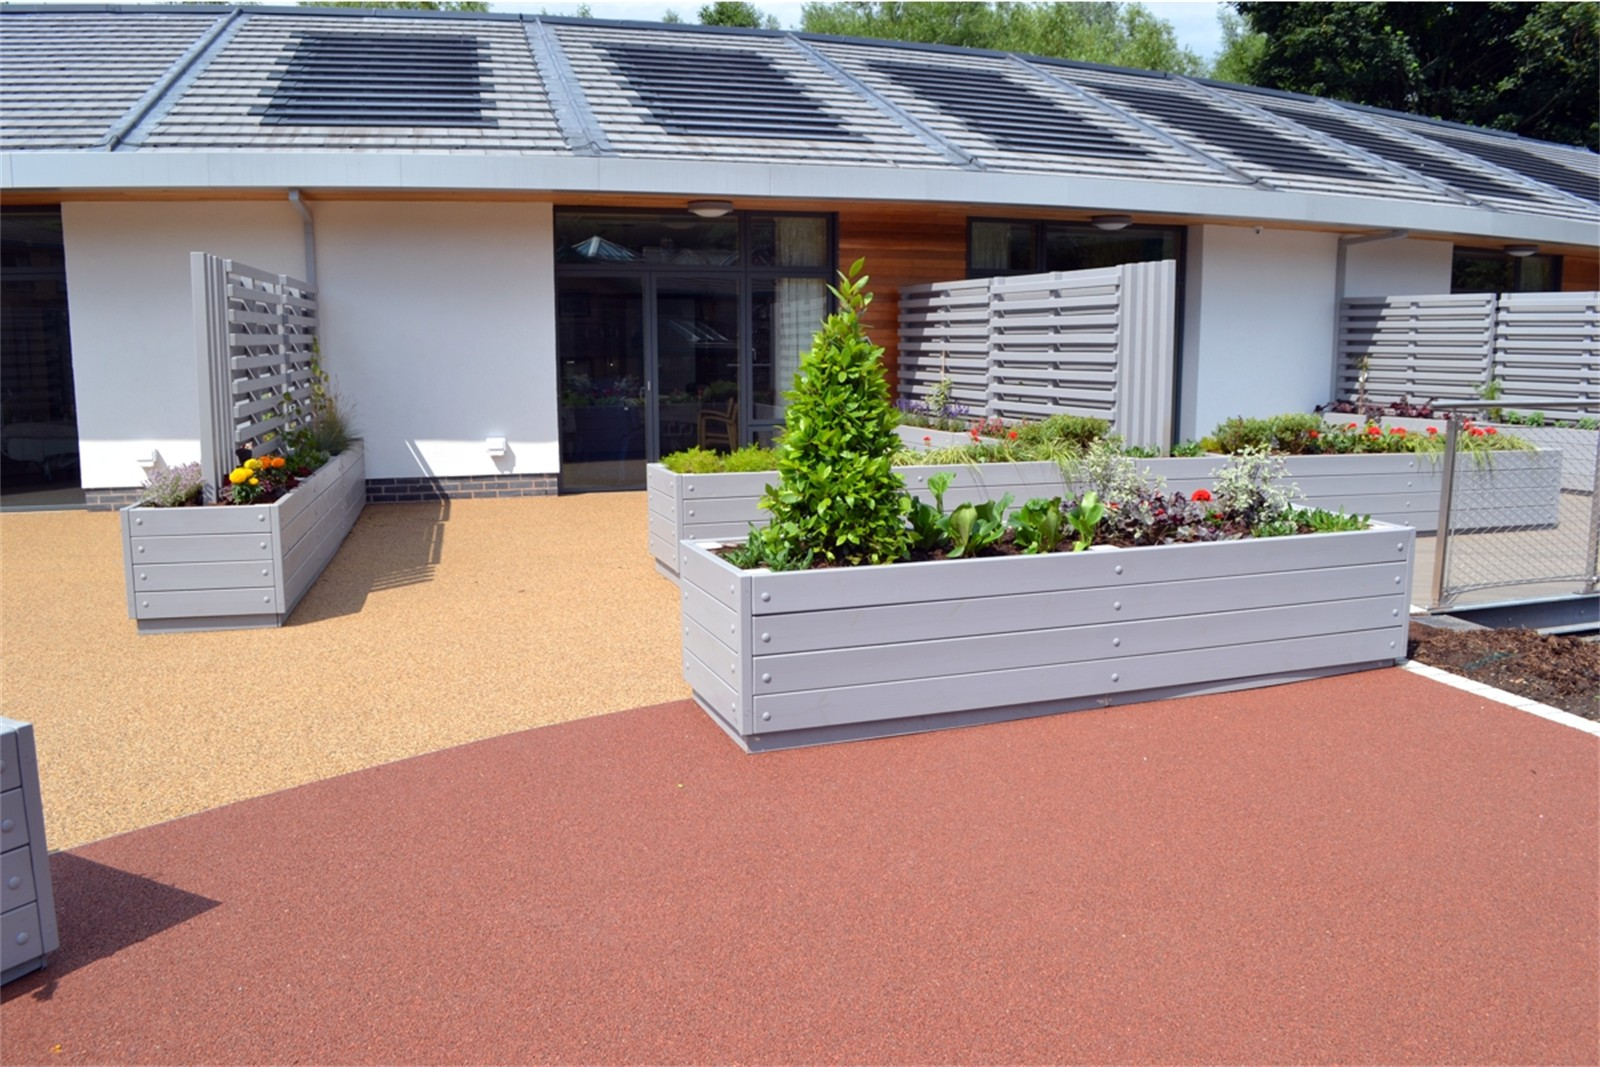 c12303 - Kirkwood Hospice, planters, seating and screens